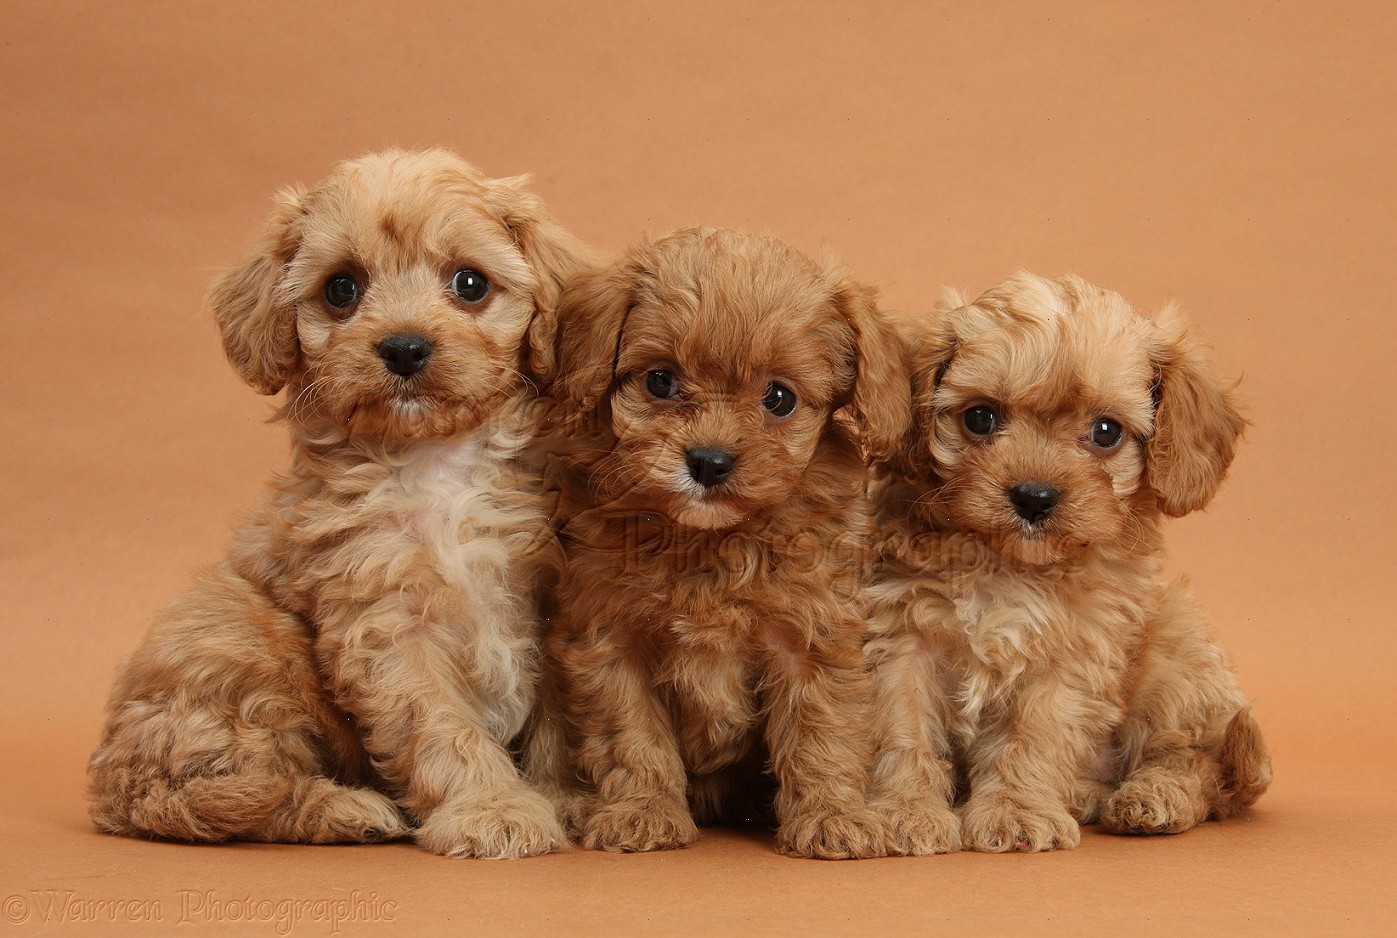 Dogs: Three Cavapoo pups on brown background photo WP31834